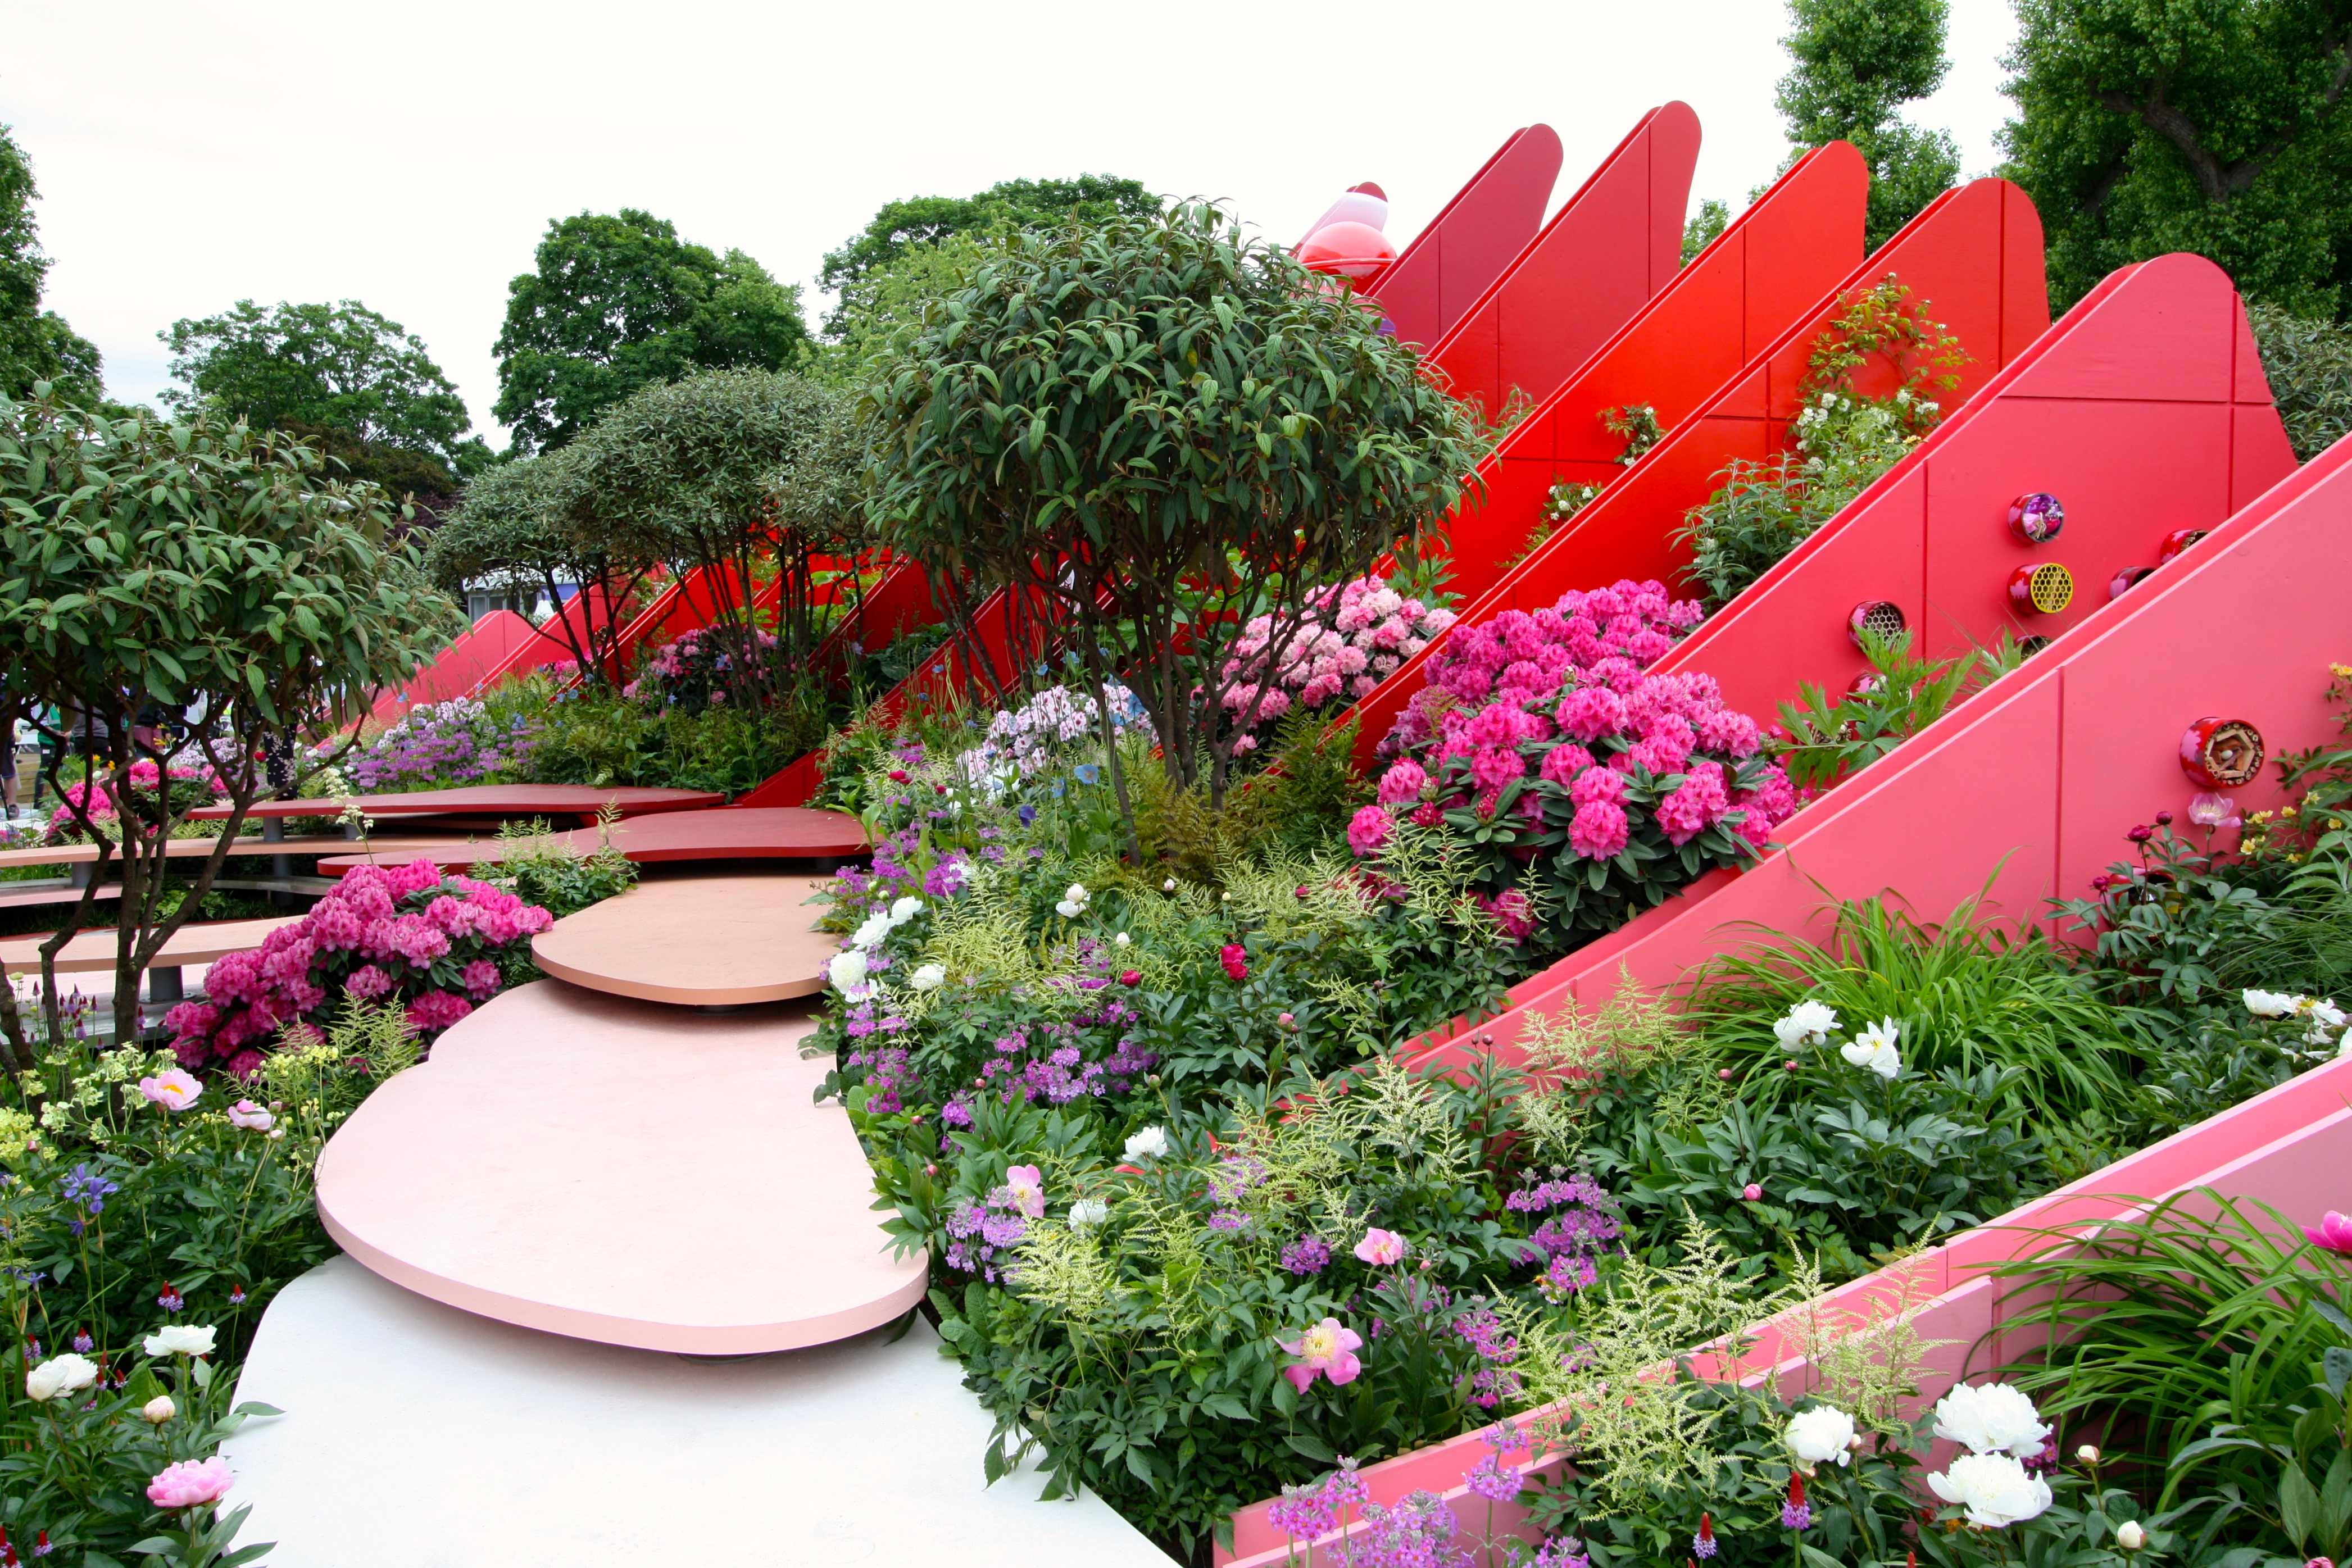 chelsea flower show 2017: chengdu silk road garden – the